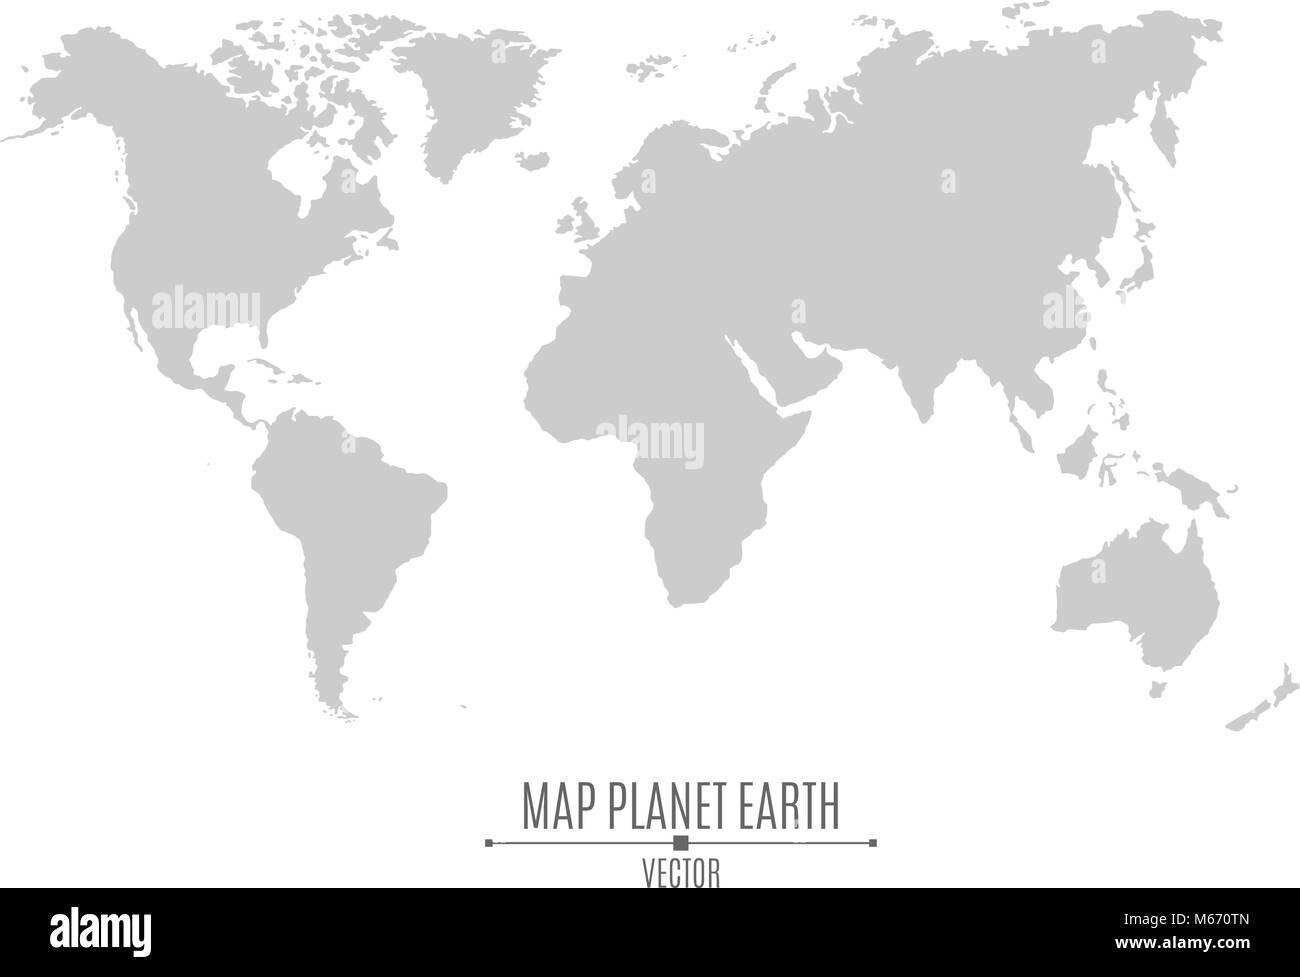 Map Of The Planet Earth In A Flat Style Continents Of Gray Color